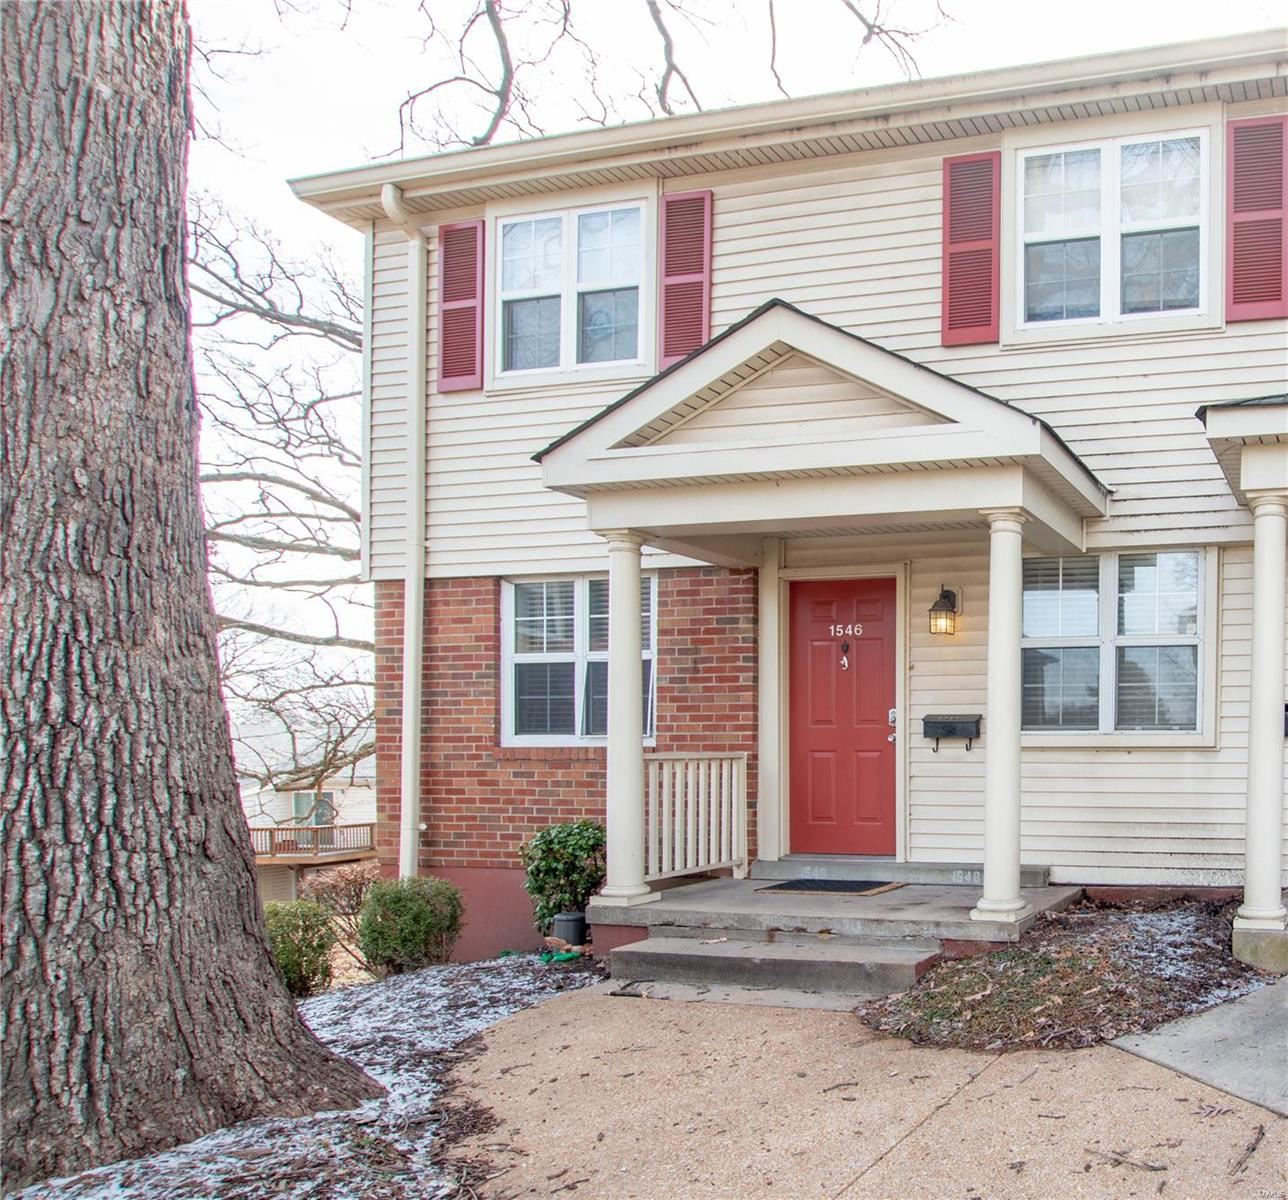 1546 Swallow, Brentwood, MO 63144 - MLS#: 20060590